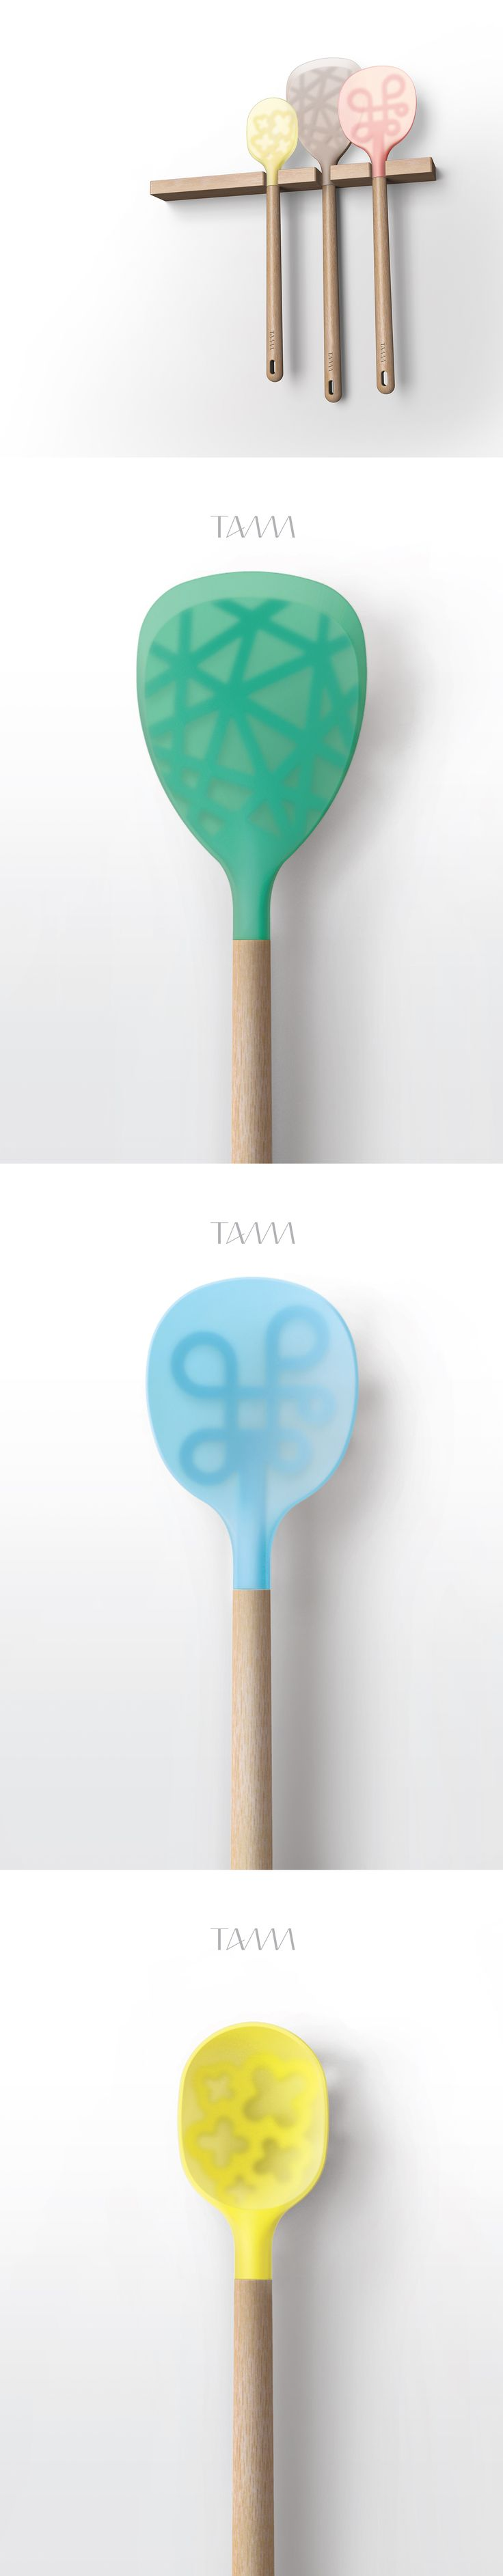 silicone kitchen tools design for 'TAMM'